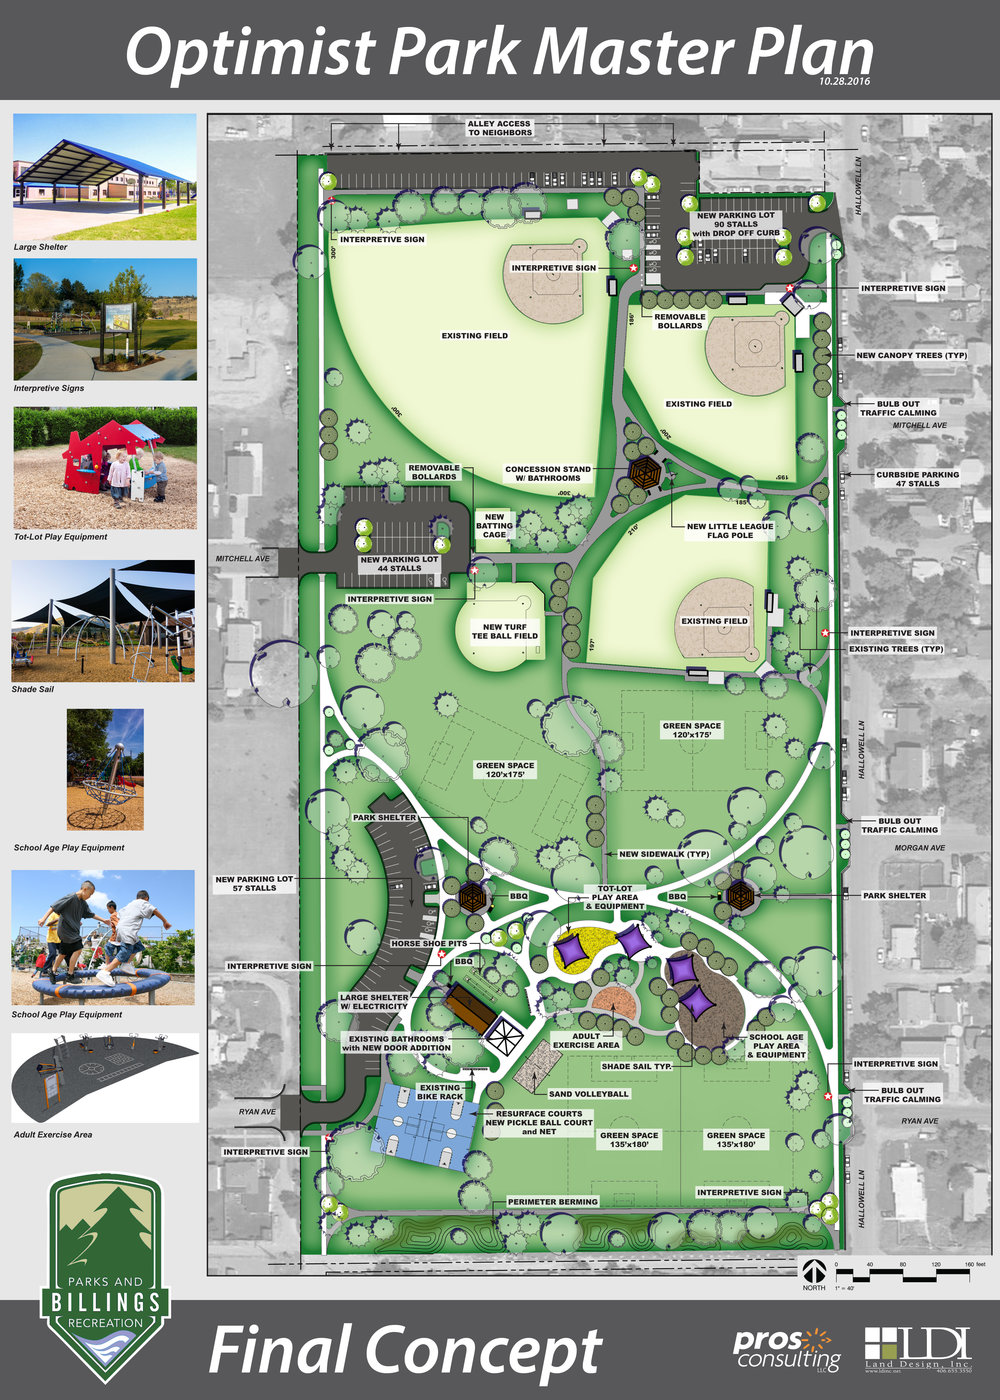 Optimist Park Master Plan